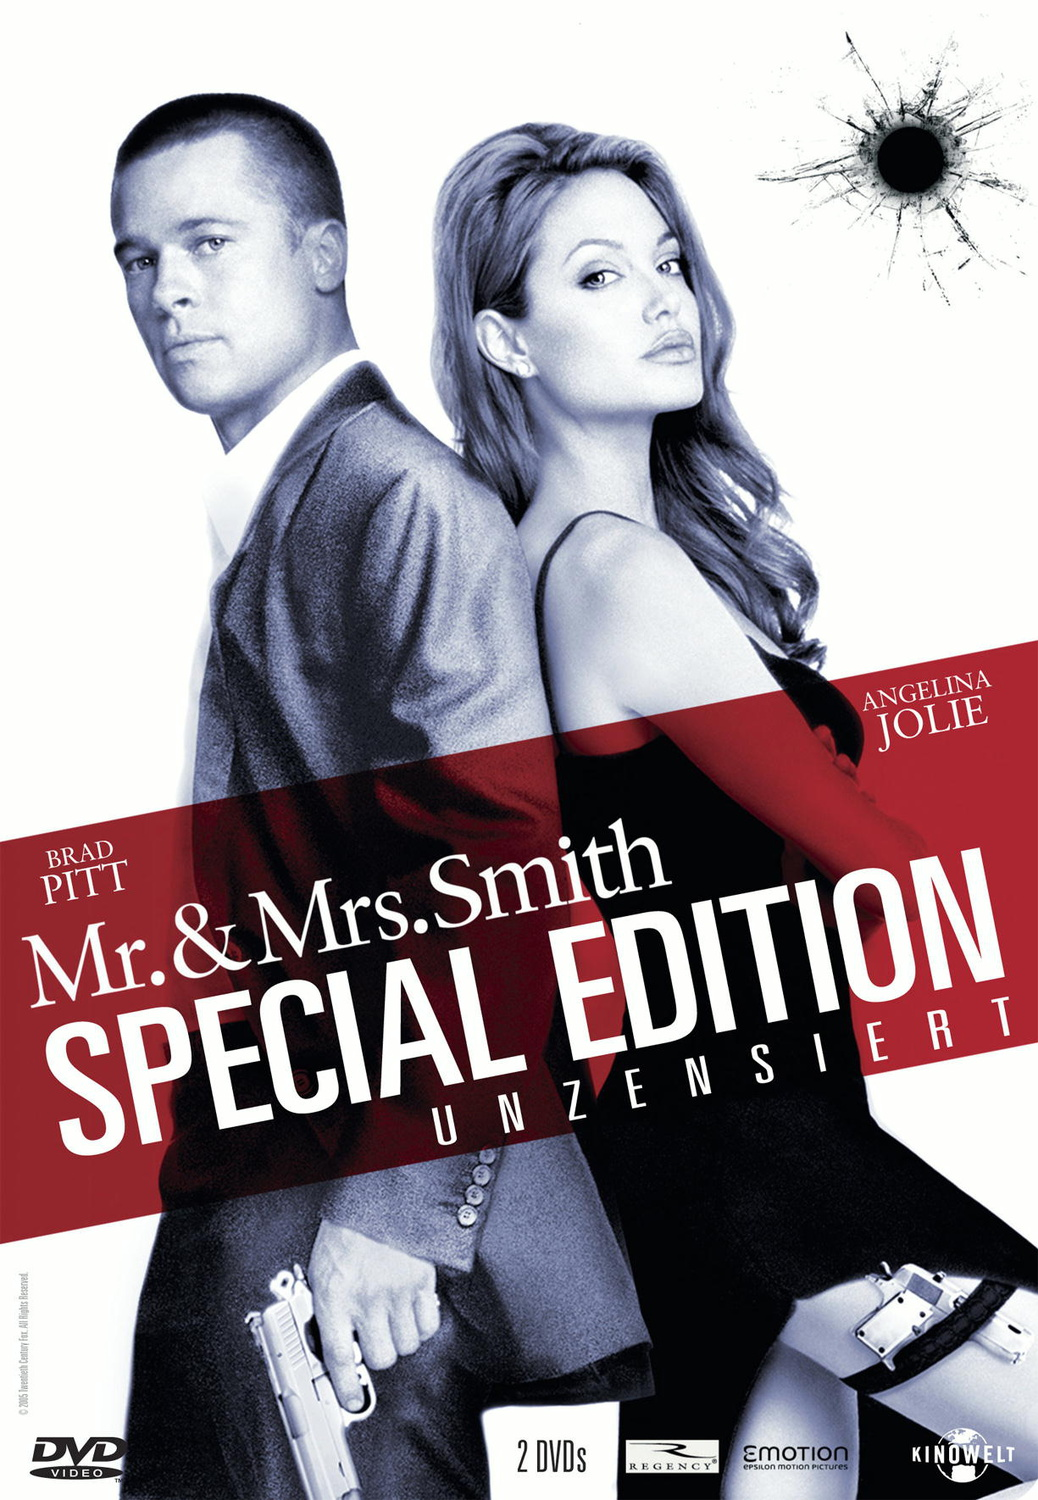 Mr. & Mrs. Smith S.E. unzensiert (2 DVD´s) Steelbook